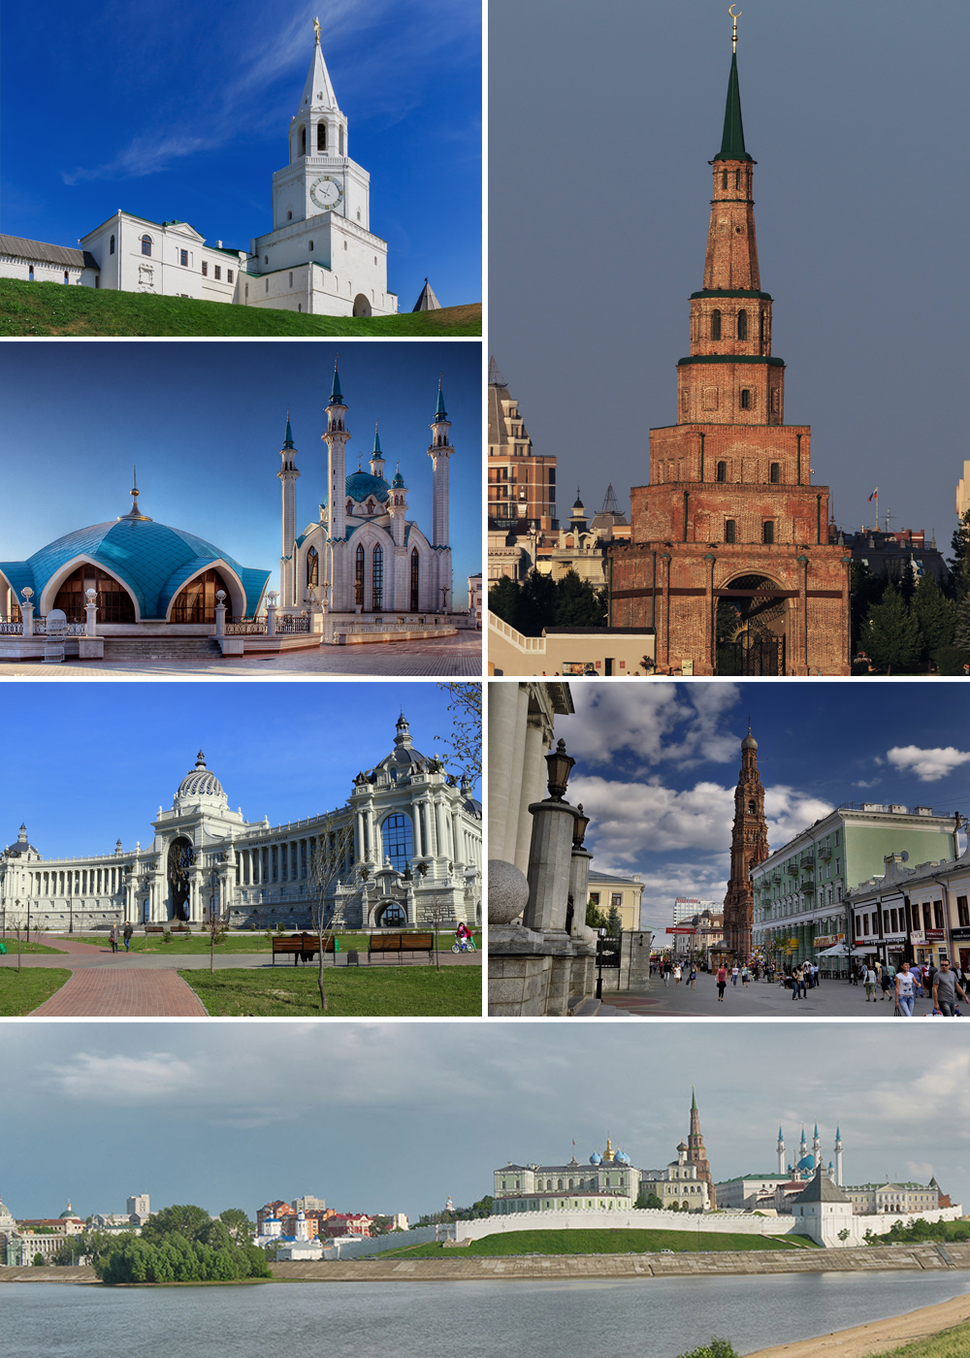 Left to right, top to bottom: Spasskaya Tower, Söyembikä Tower, Qol Sharif Mosque, Farmers' Palace, Epiphany Cathedral, view of Kazan